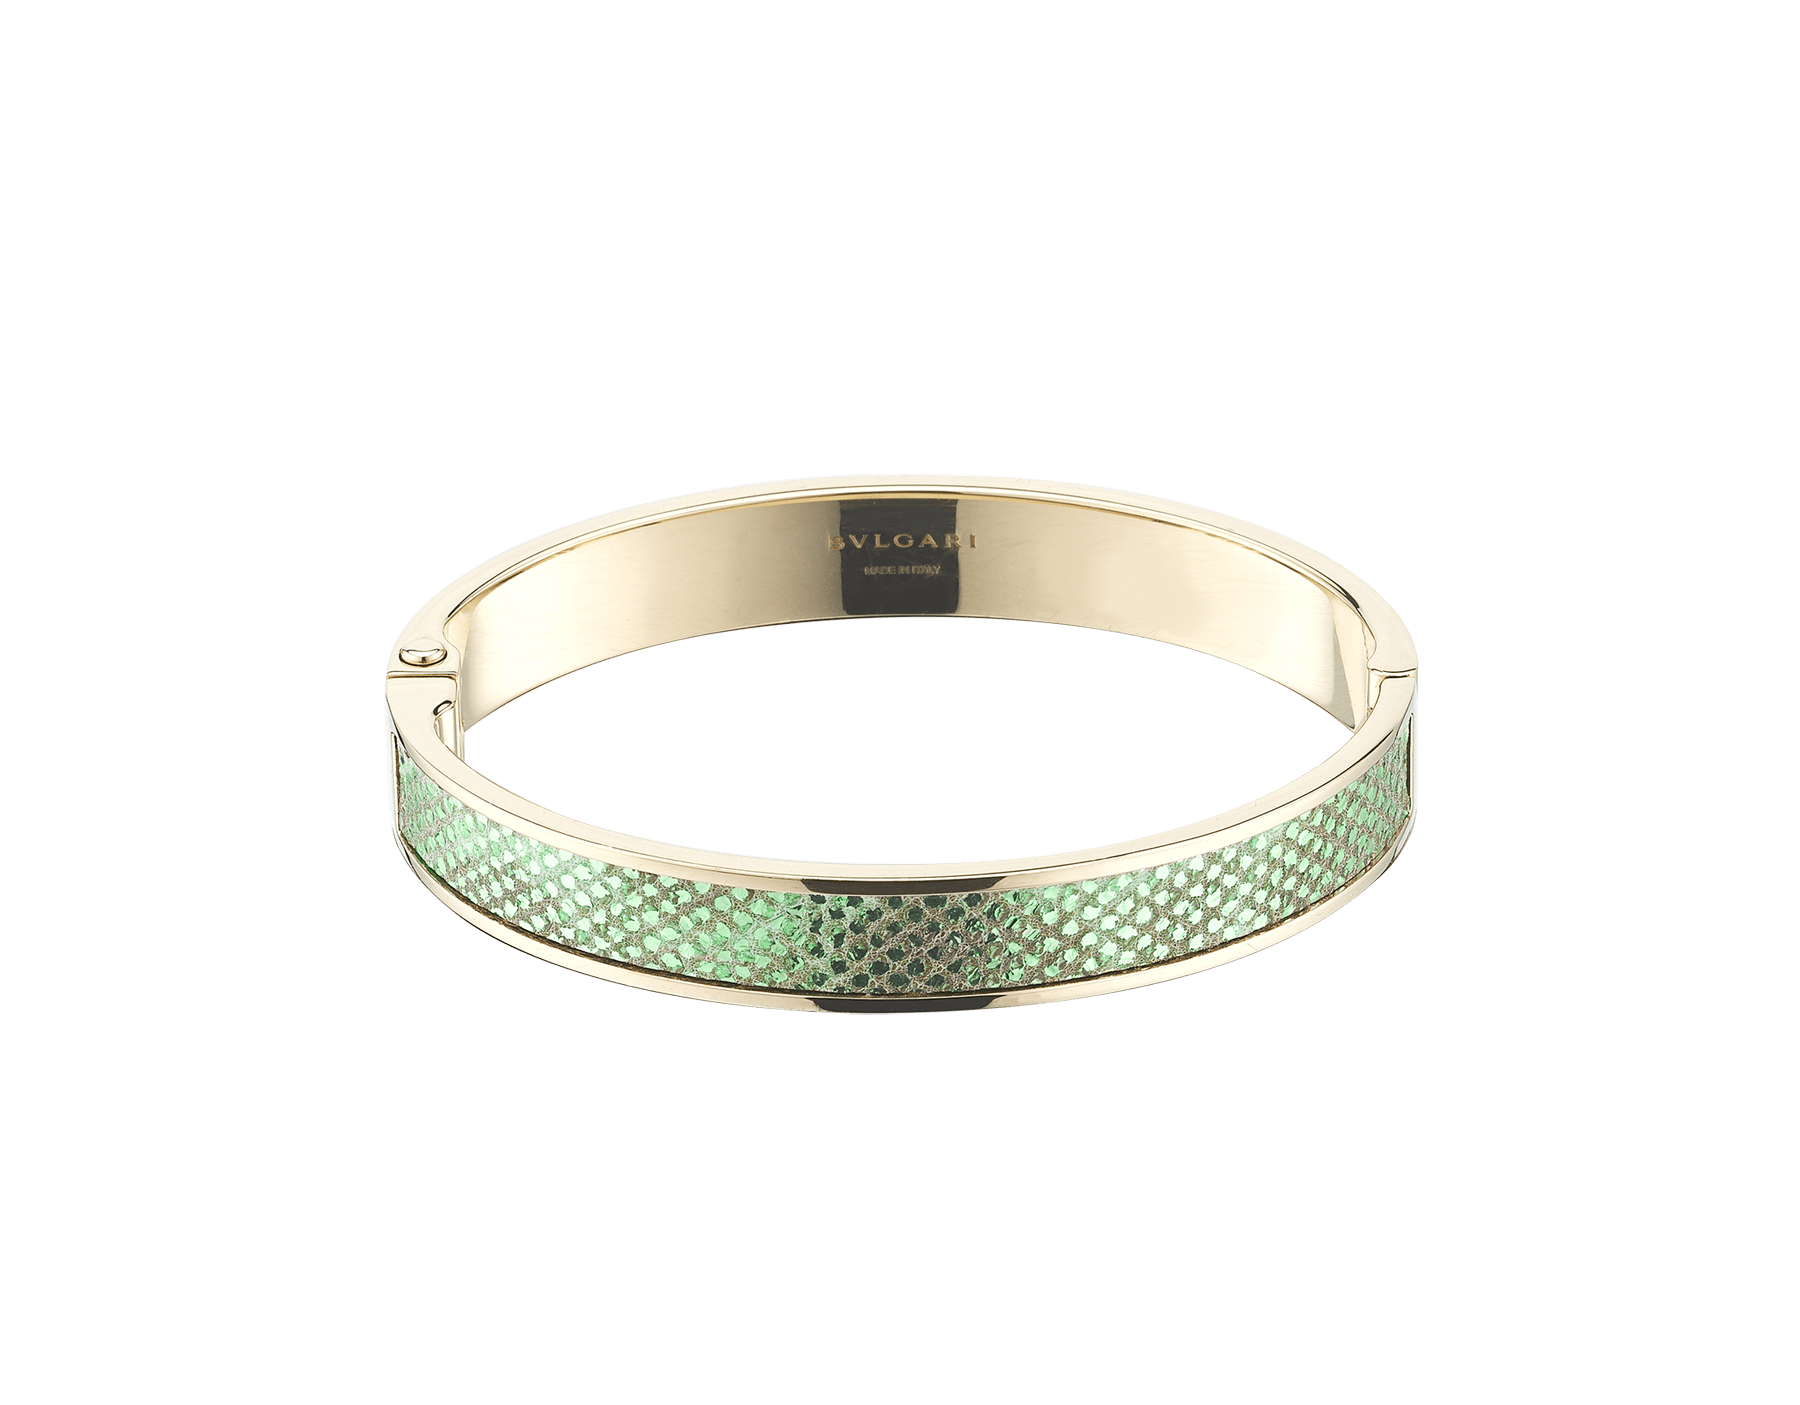 """BVLGARI BVLGARI"" new bangle bracelet in light gold with a mint metallic karung skin insert and a hinge featuring the BVLGARI logo. Engraved logo on the inside. HINGEBBBRACLT-MK-M image 1"